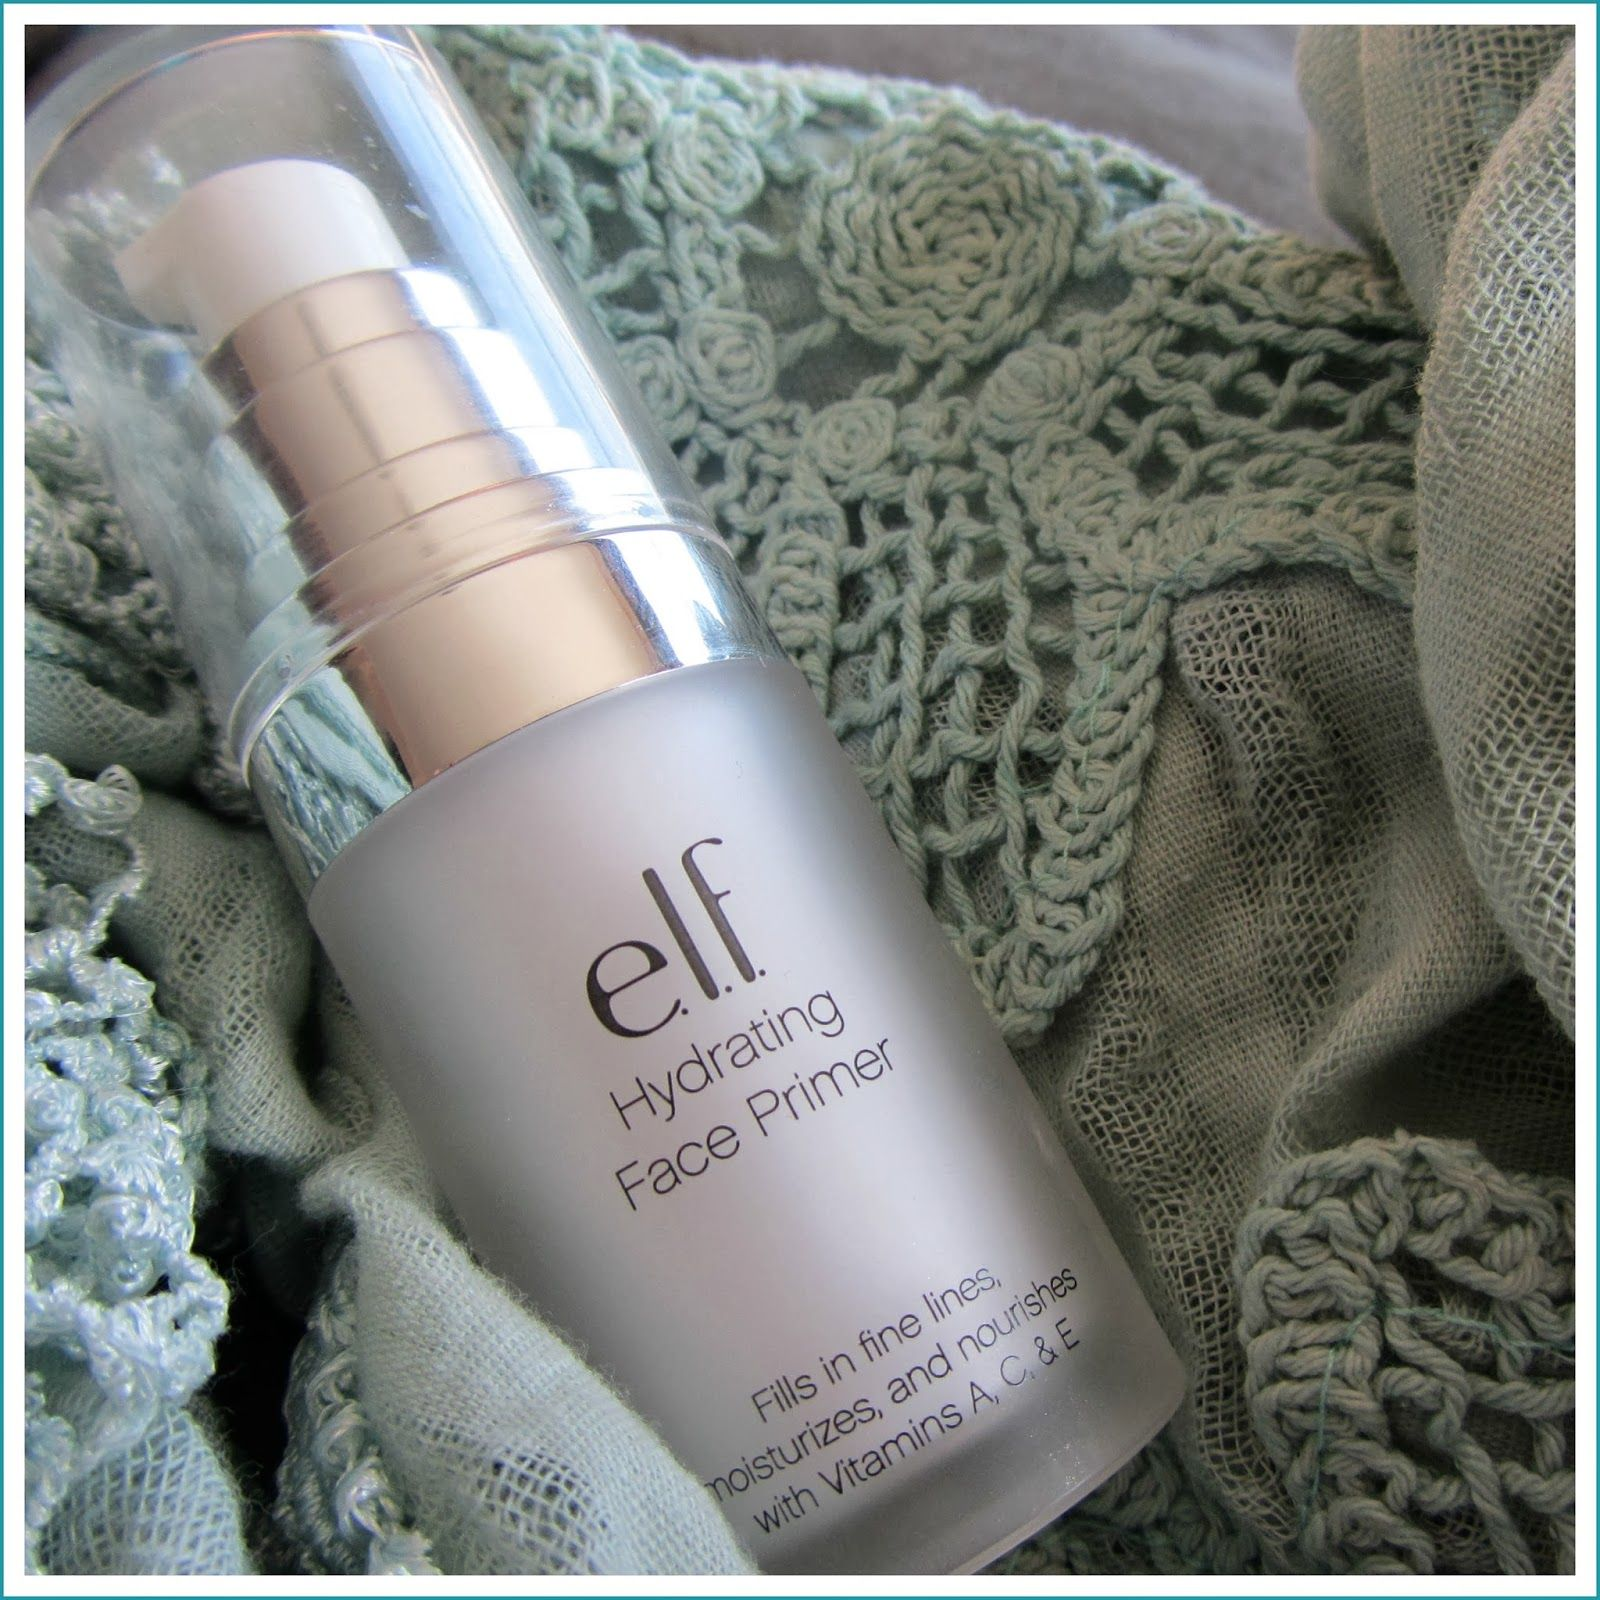 e.l.f. Hydrating Face Primer Review Face hydration, Face